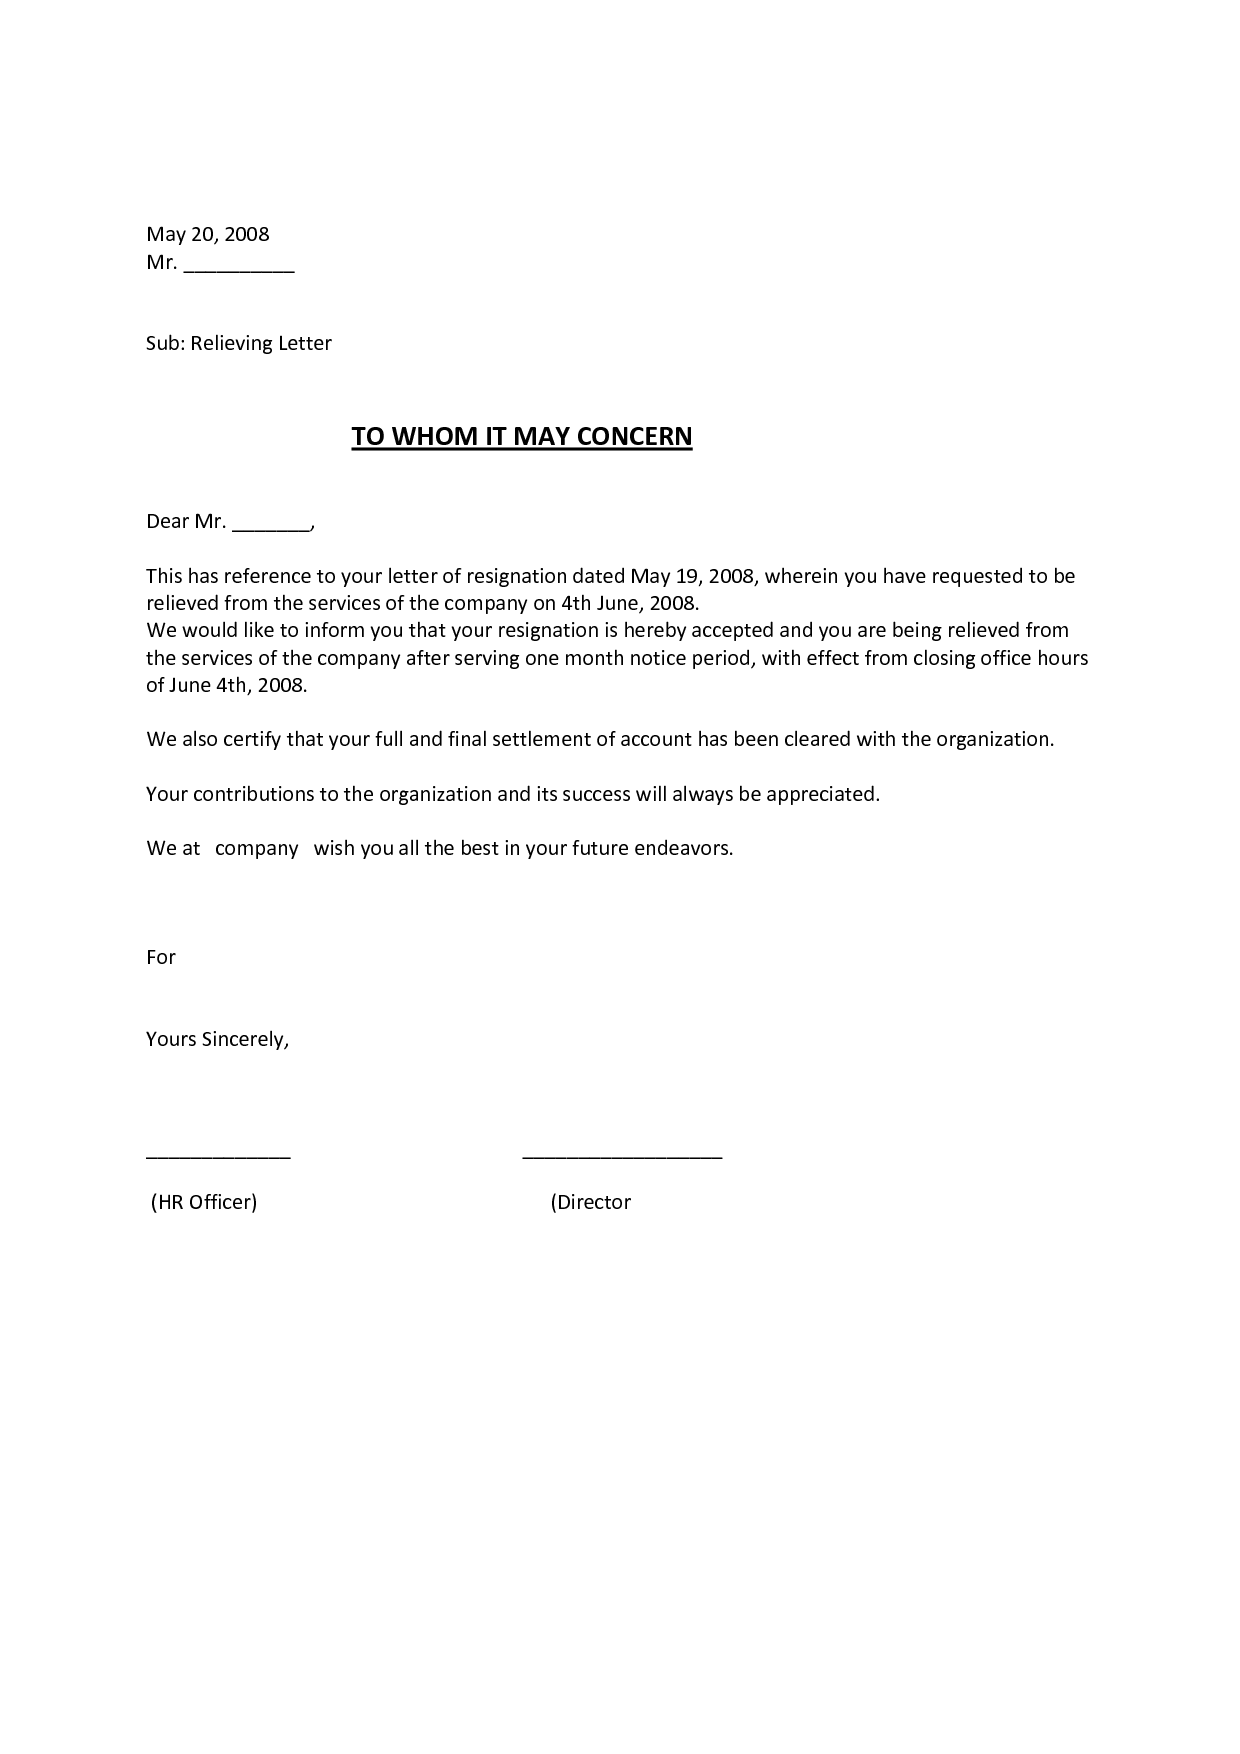 Relieving letter format for employee free download hr letter employee relieving letter a relieving letter is meant to relieve the employee who is no longer associated with the company spiritdancerdesigns